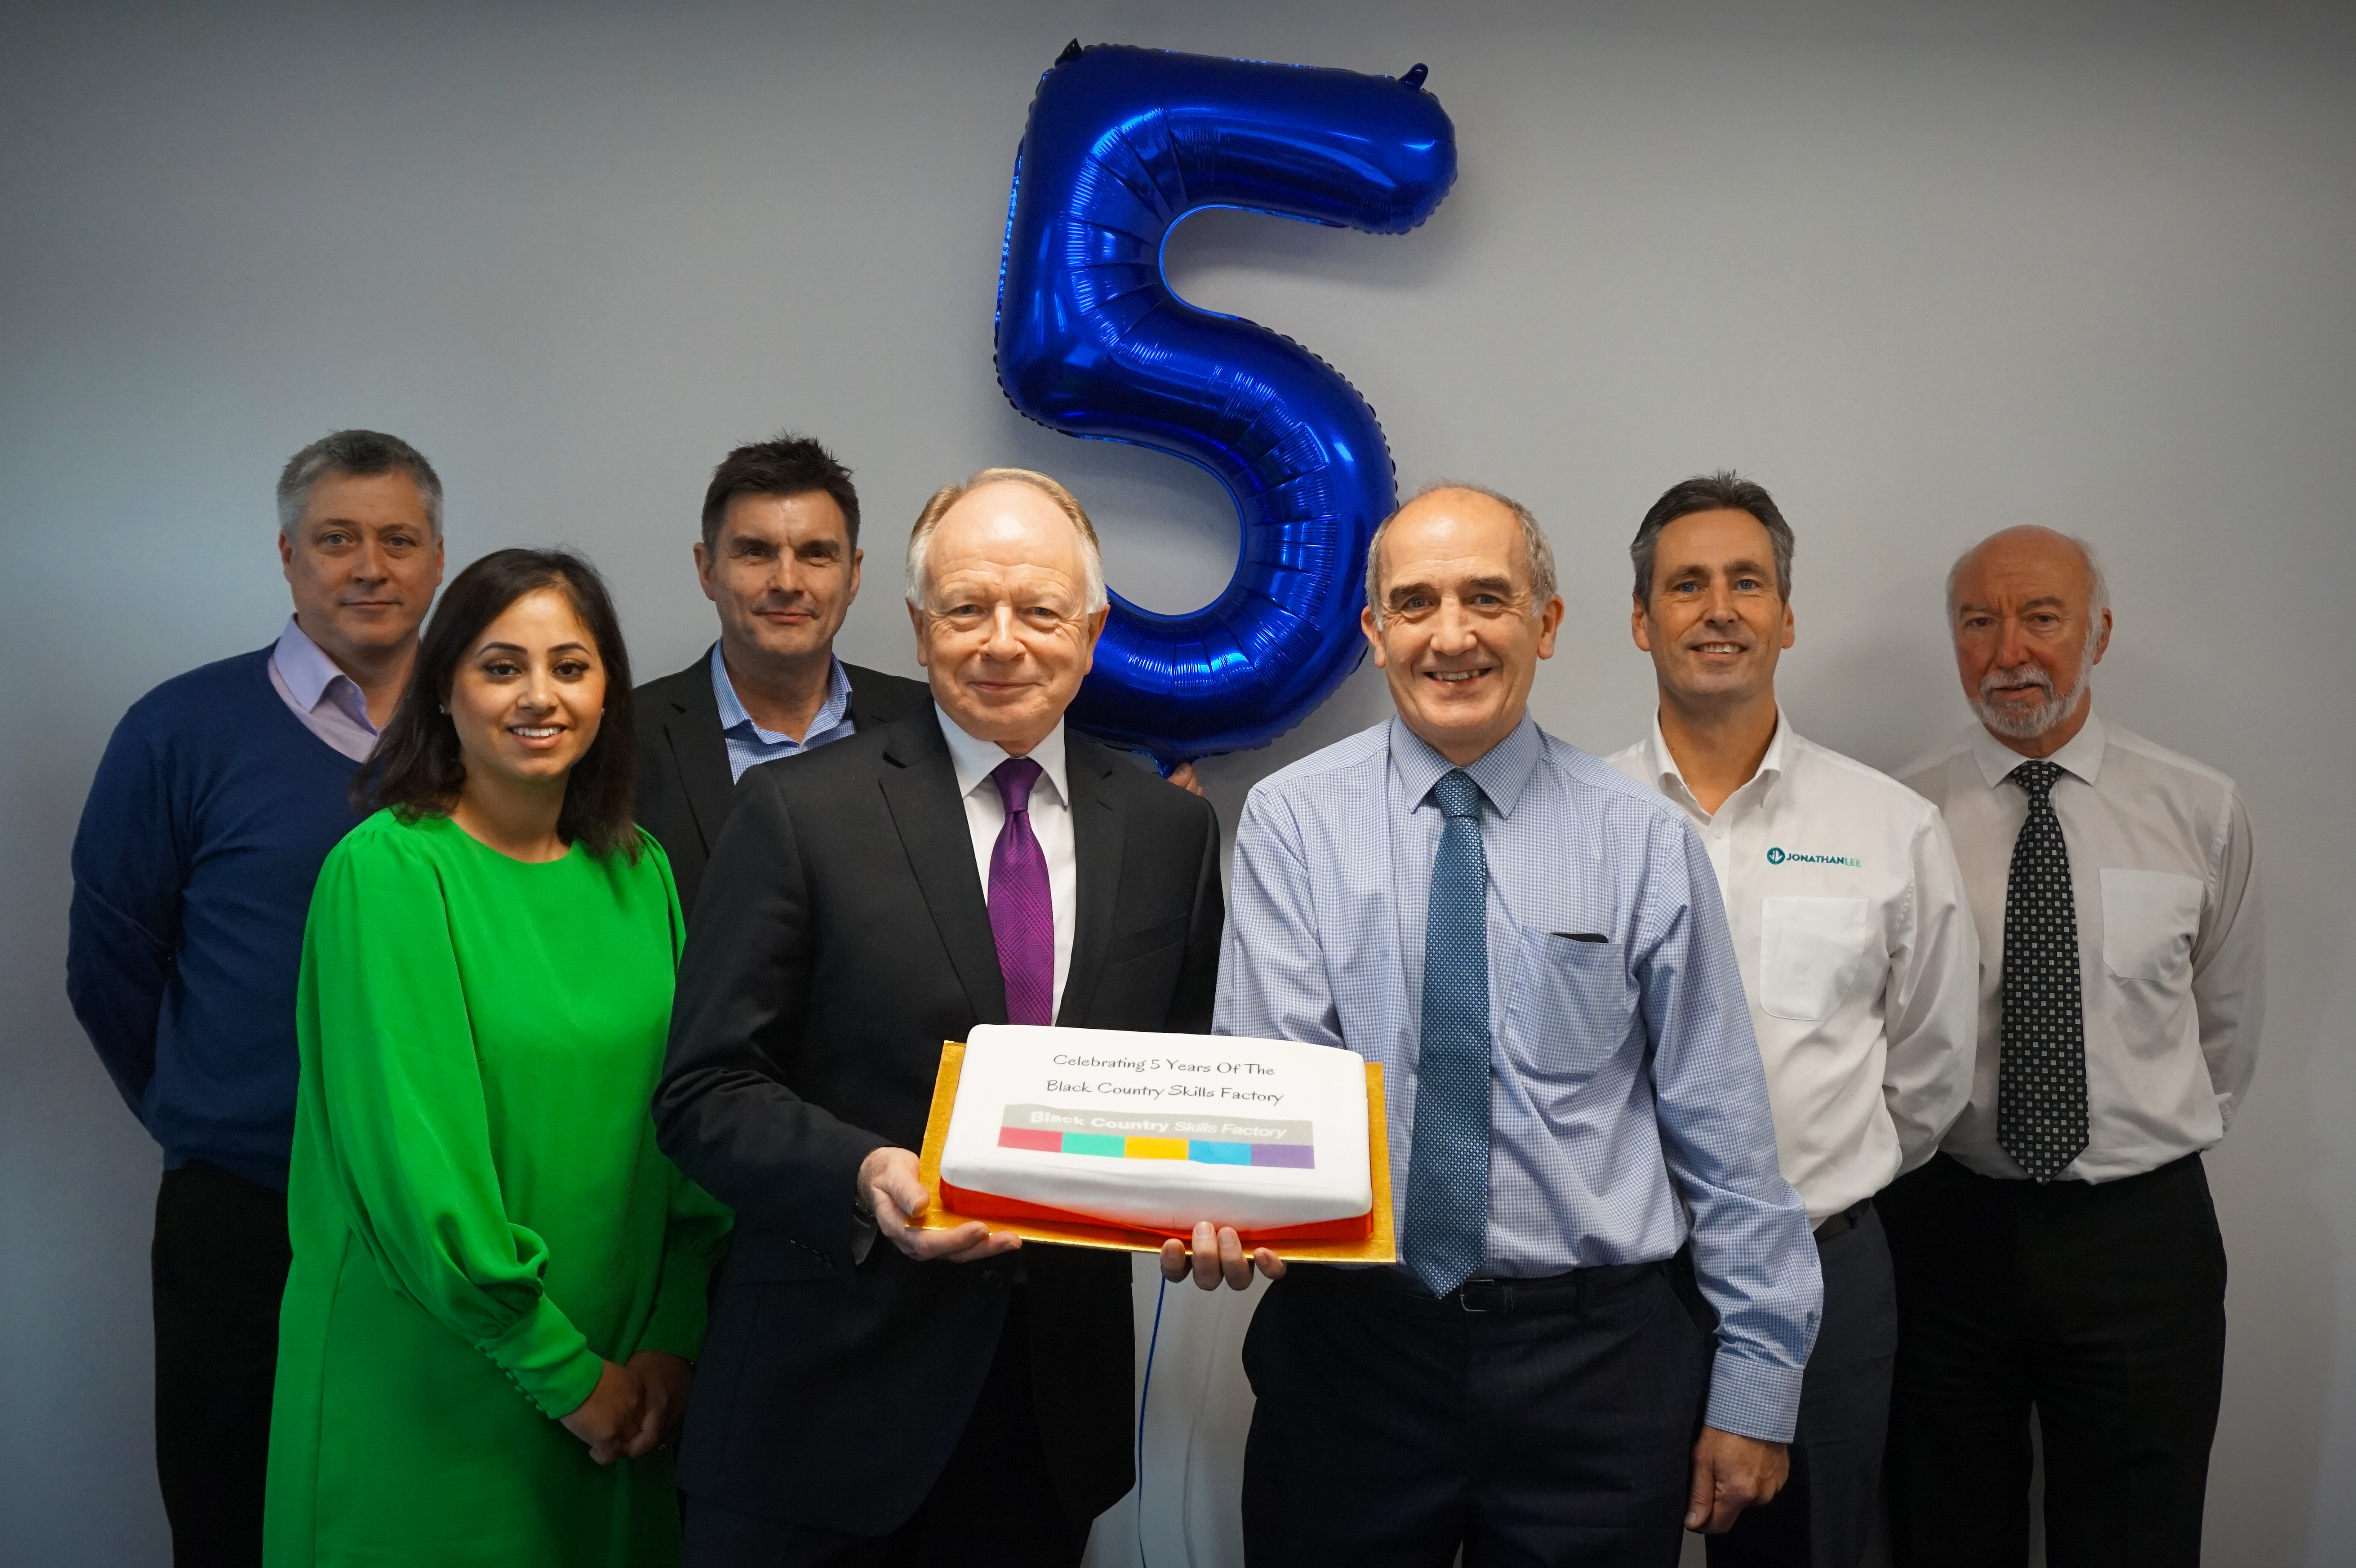 Black Country Skills Factory celebrates 5 years  success in developing skills